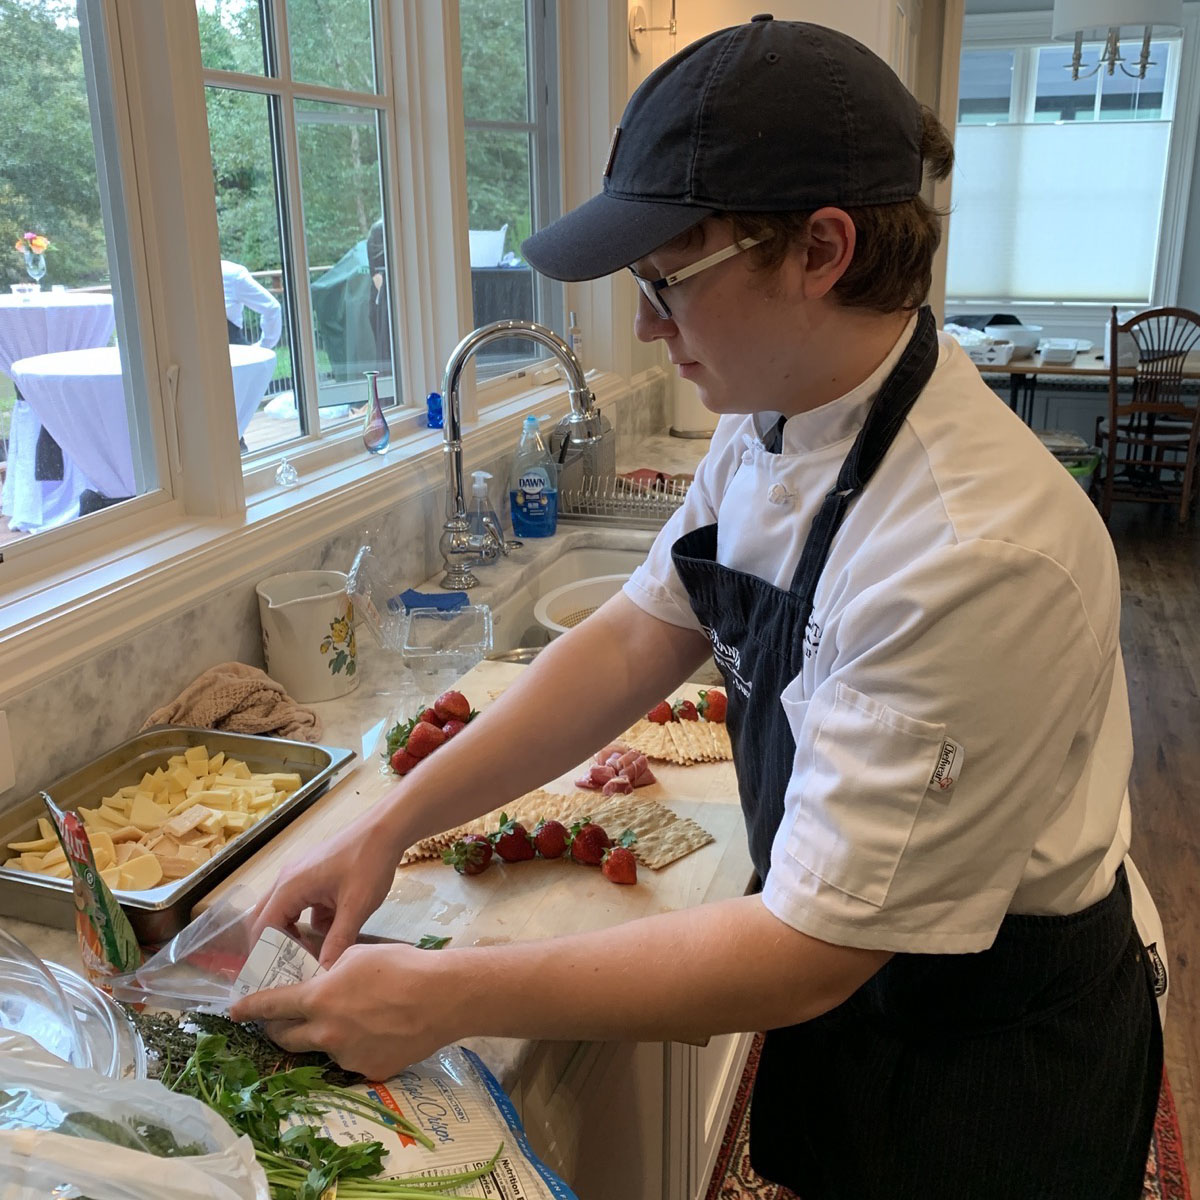 Chef Jacob prepping hors d'oeuvre for pre-dinner reception